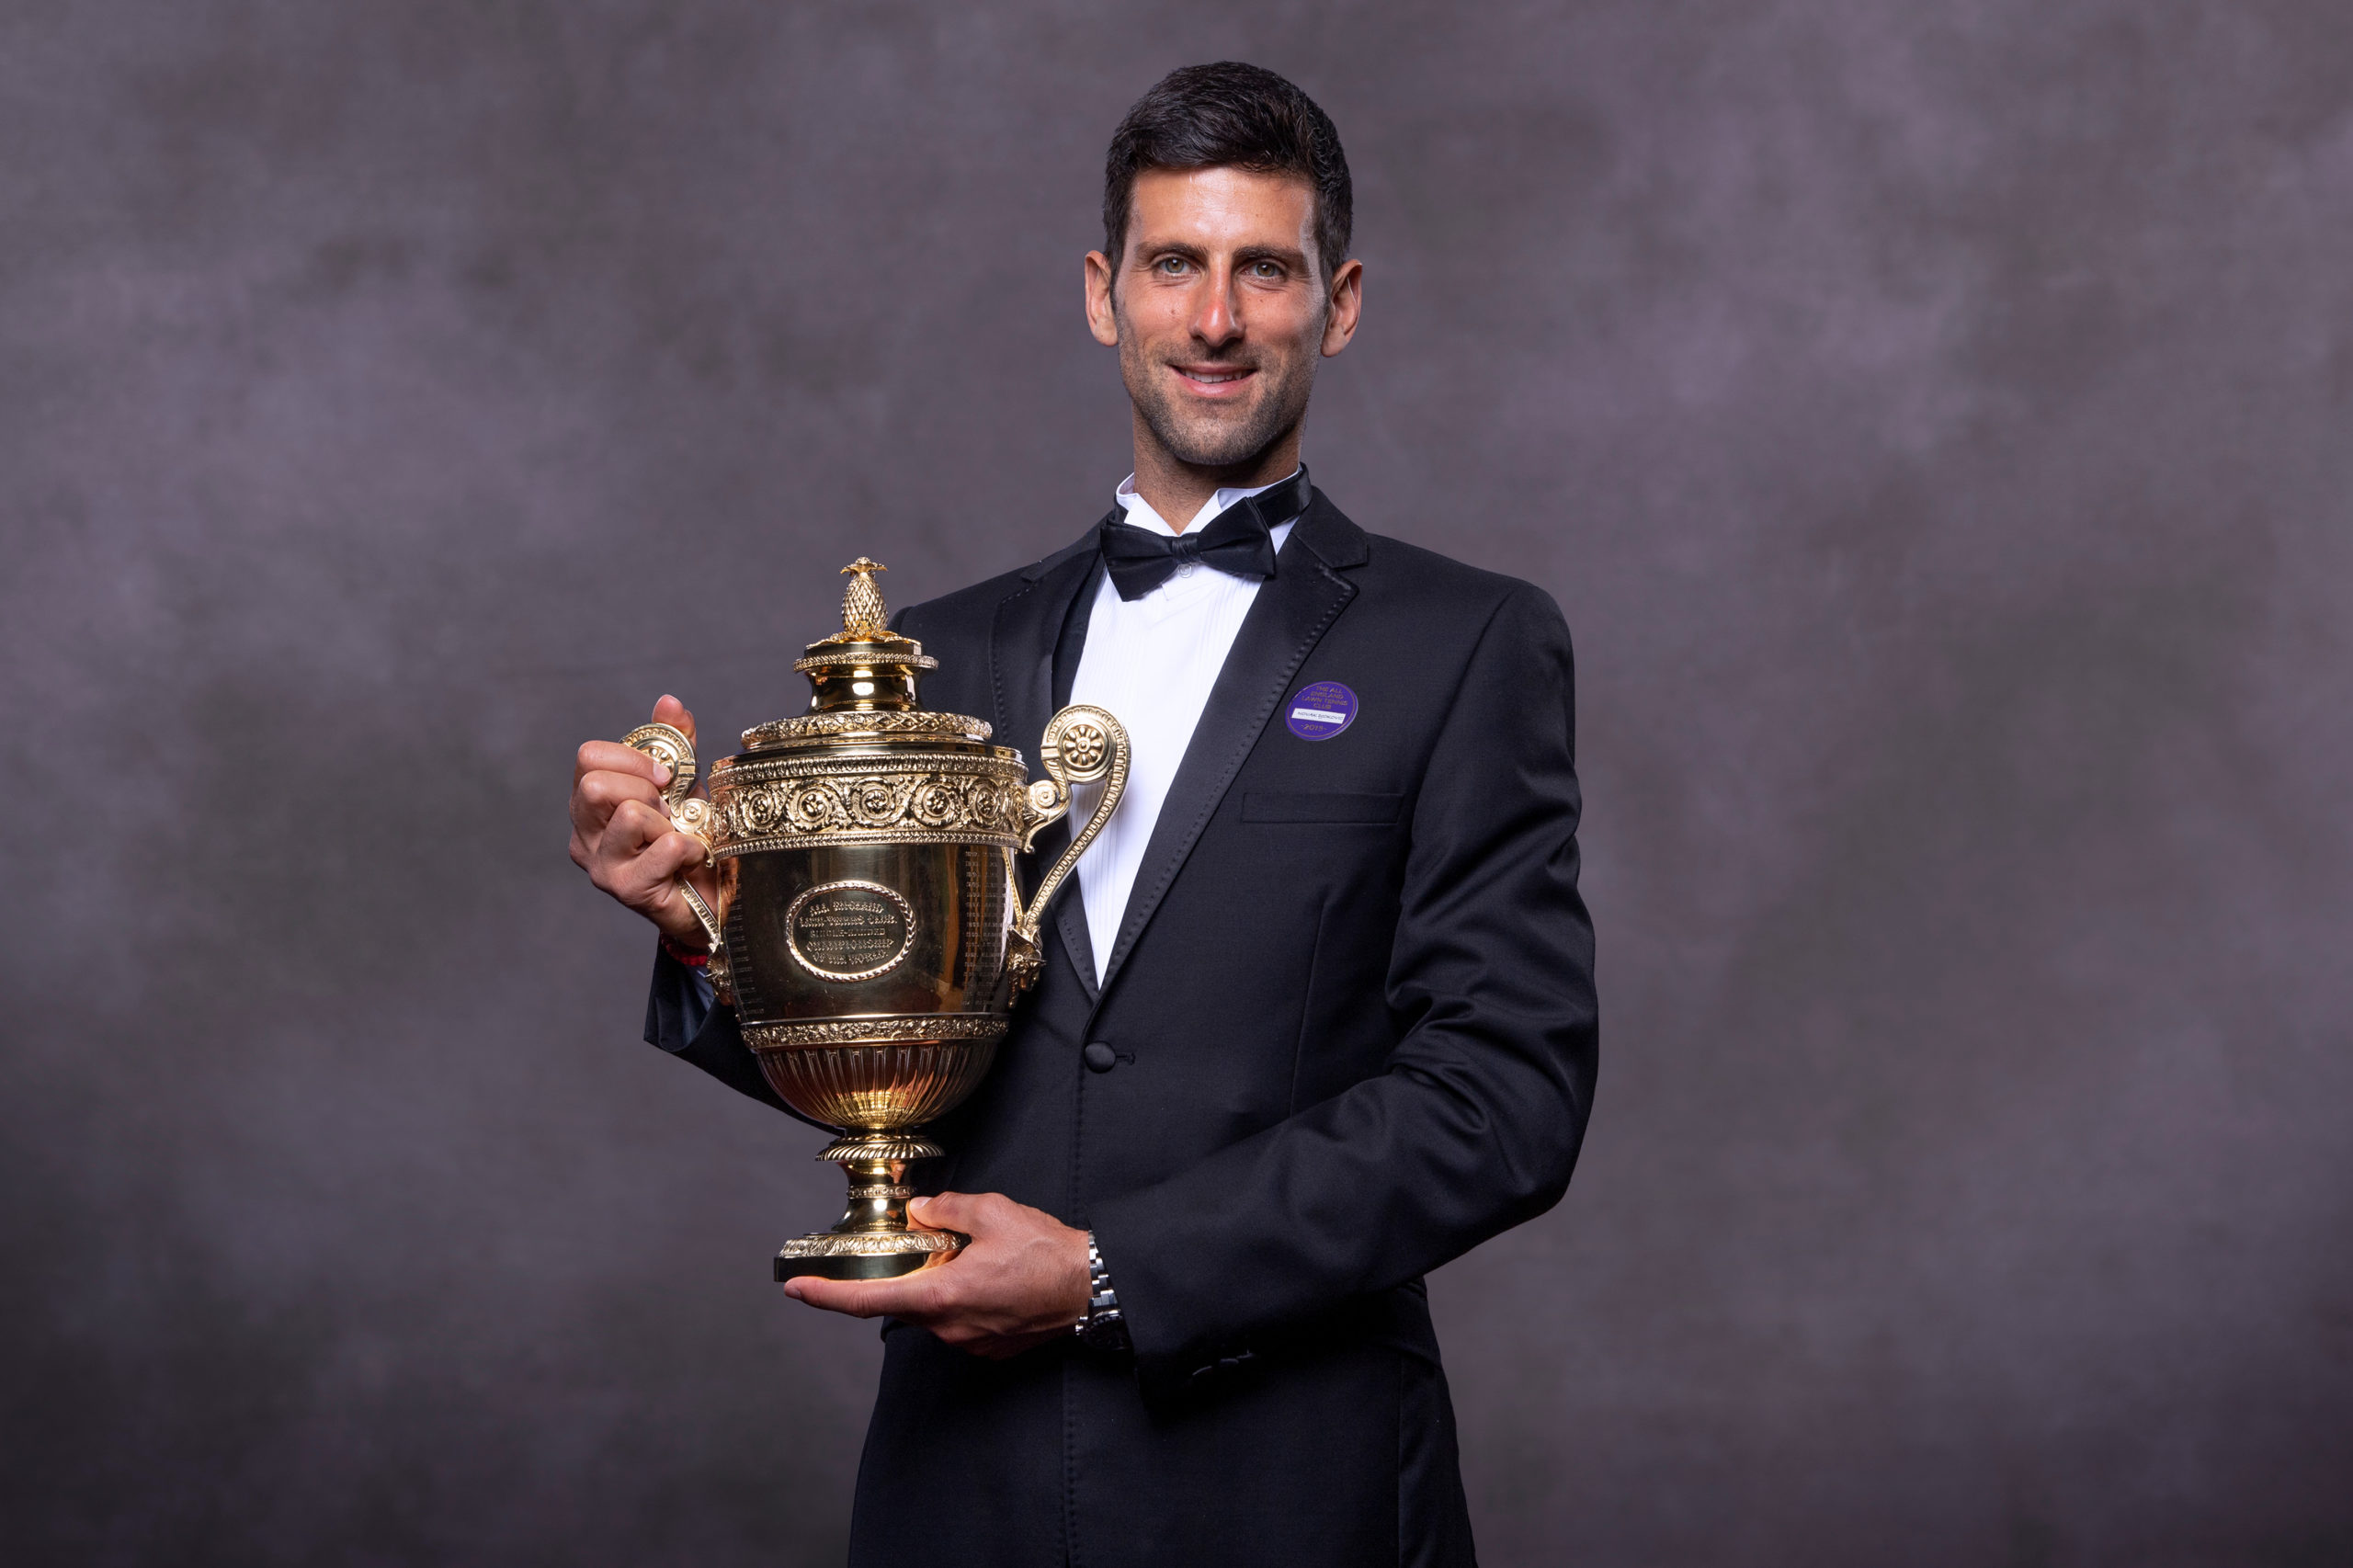 LONDON, UNITED KINGDOM - JULY 14:  (EDITORIAL USE ONLY) In this handout image supplied by the All England Lawn Tennis Club, Novak Djokovic of Serbia, the Gentlemens Singles champion photographed at the Champions' Dinner at The Guildhall on July 14, 2019 in London, England.  (Photo by Thomas Lovelock / AELTC via Getty Images)